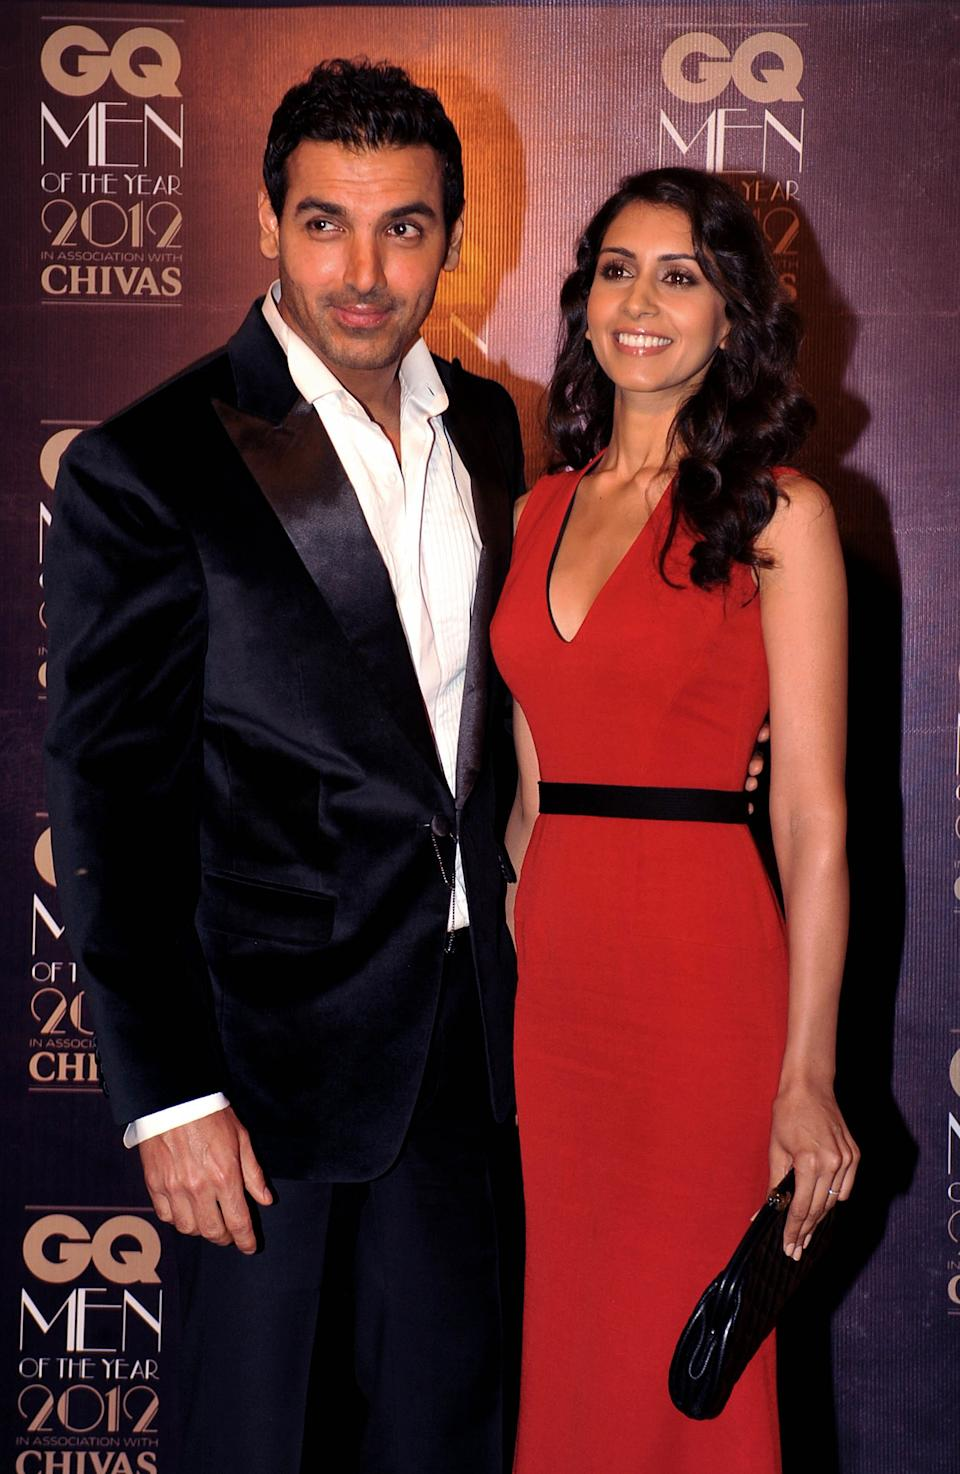 Indian Bollywood film actor John Abraham (L), with girlfriend Priya Runchal, received the Most Stylish Man award during the 'GQ Men of the Year Awards 2012' in Mumbai on September 30, 2012.   AFP PHOTO        (Photo credit should read STR/AFP/GettyImages)